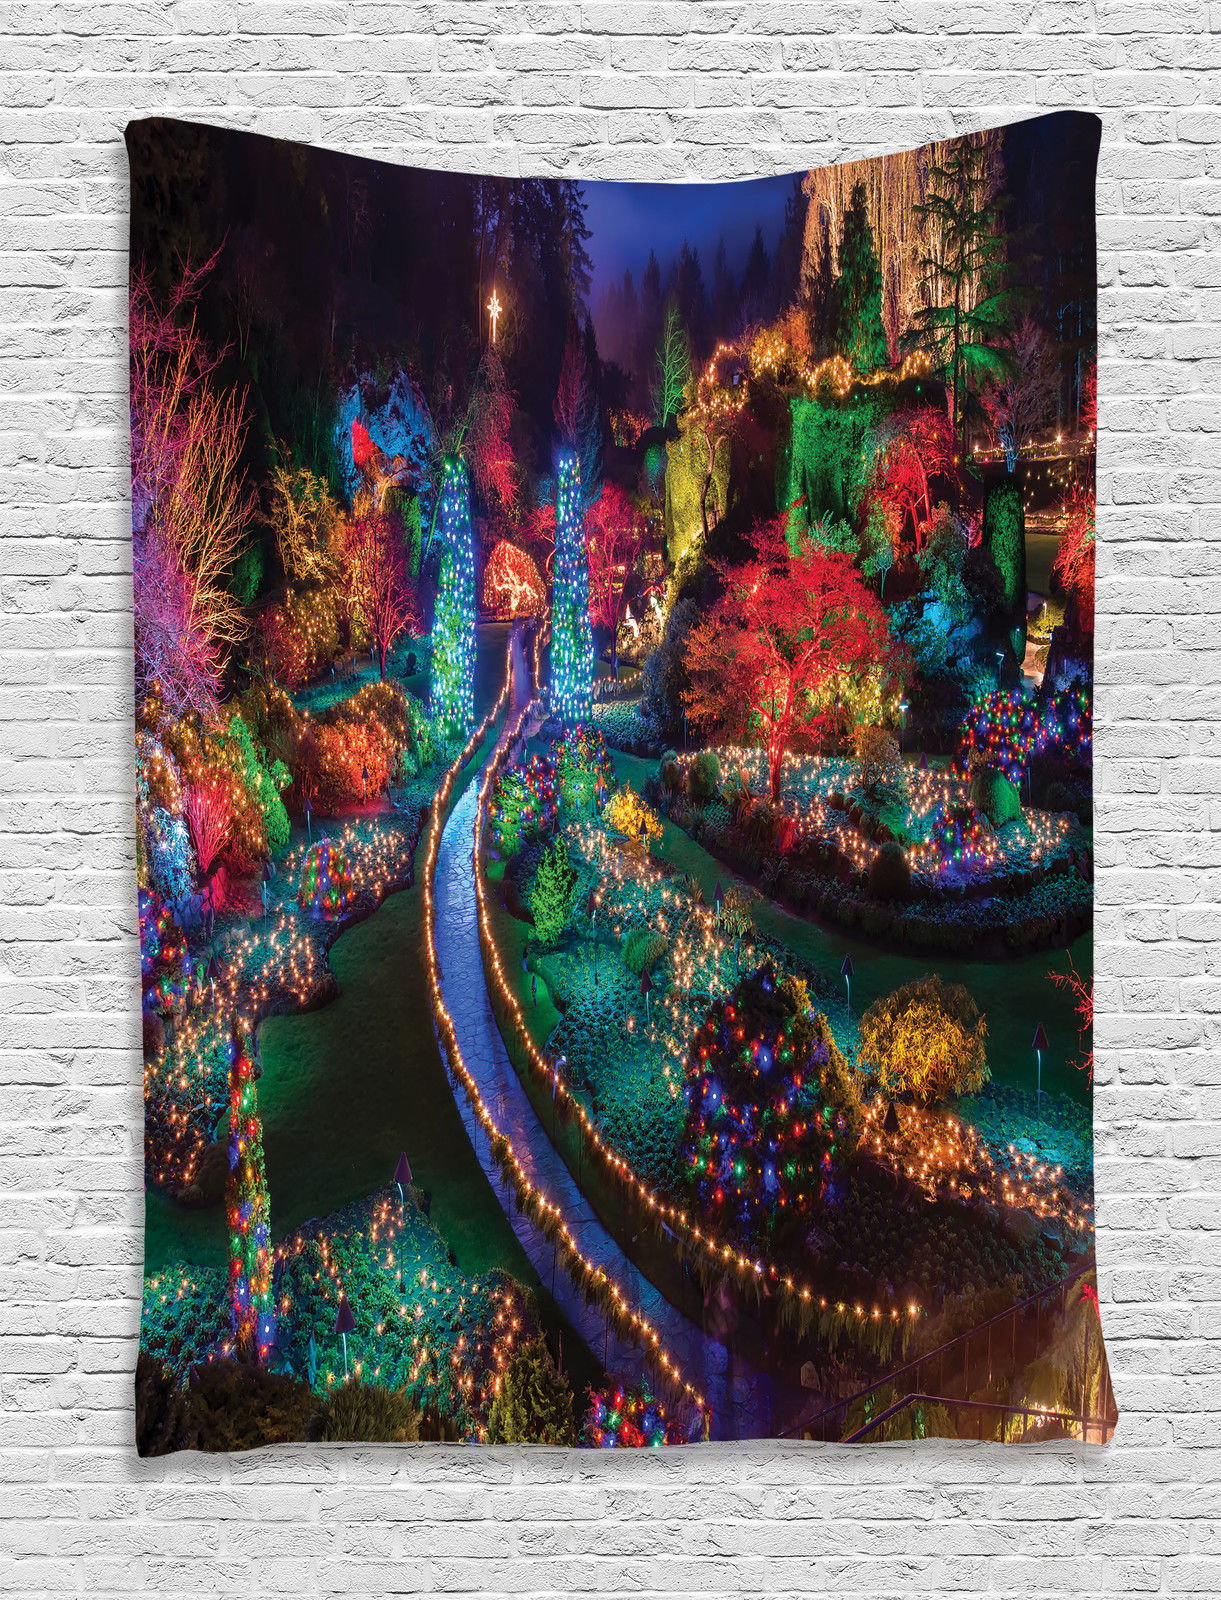 Outdoor Wall Hanging Christmas Lights : Christmas Lights in Garden Decoration Season Nature Print Wall Hanging Tapestry eBay